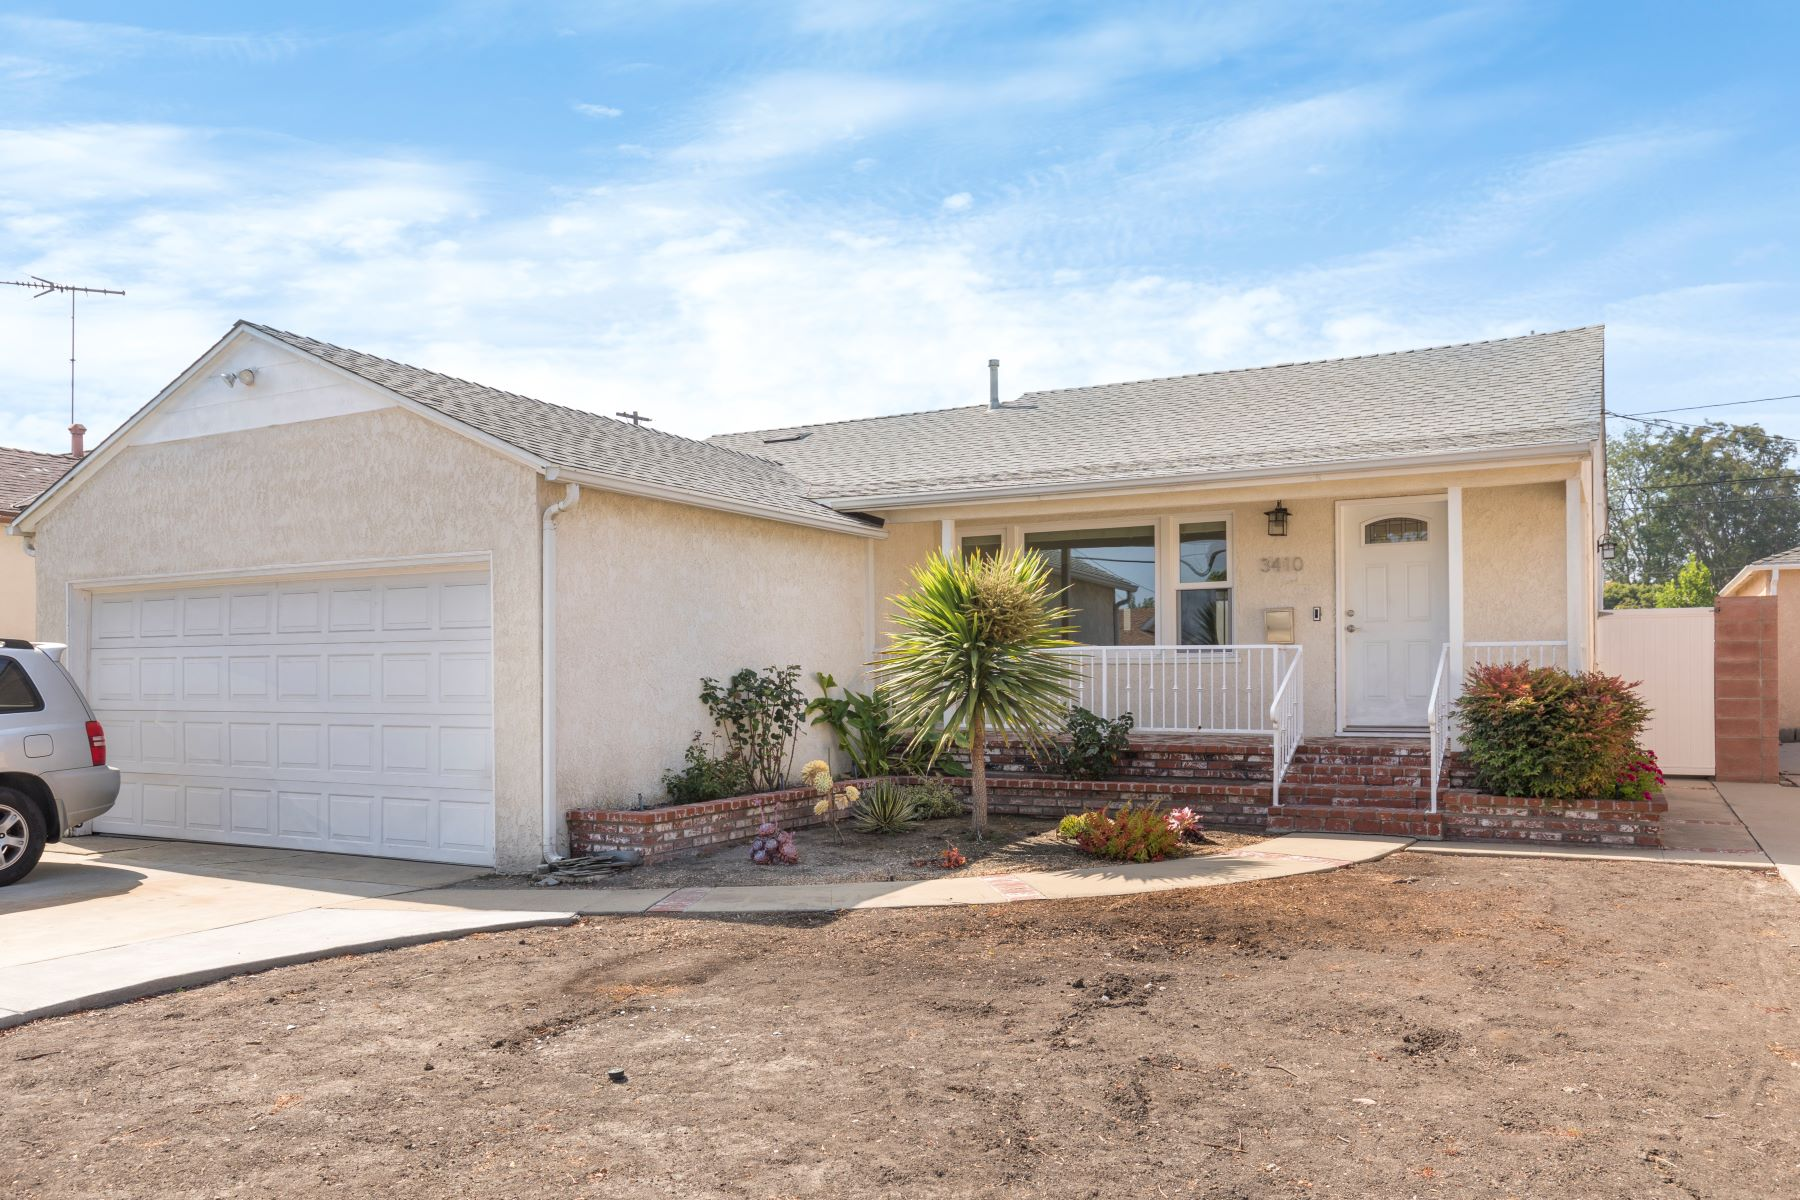 Single Family Homes for Sale at 3410 West 171st Street, Torrance, CA 90504 3410 West 171st Street Torrance, California 90504 United States